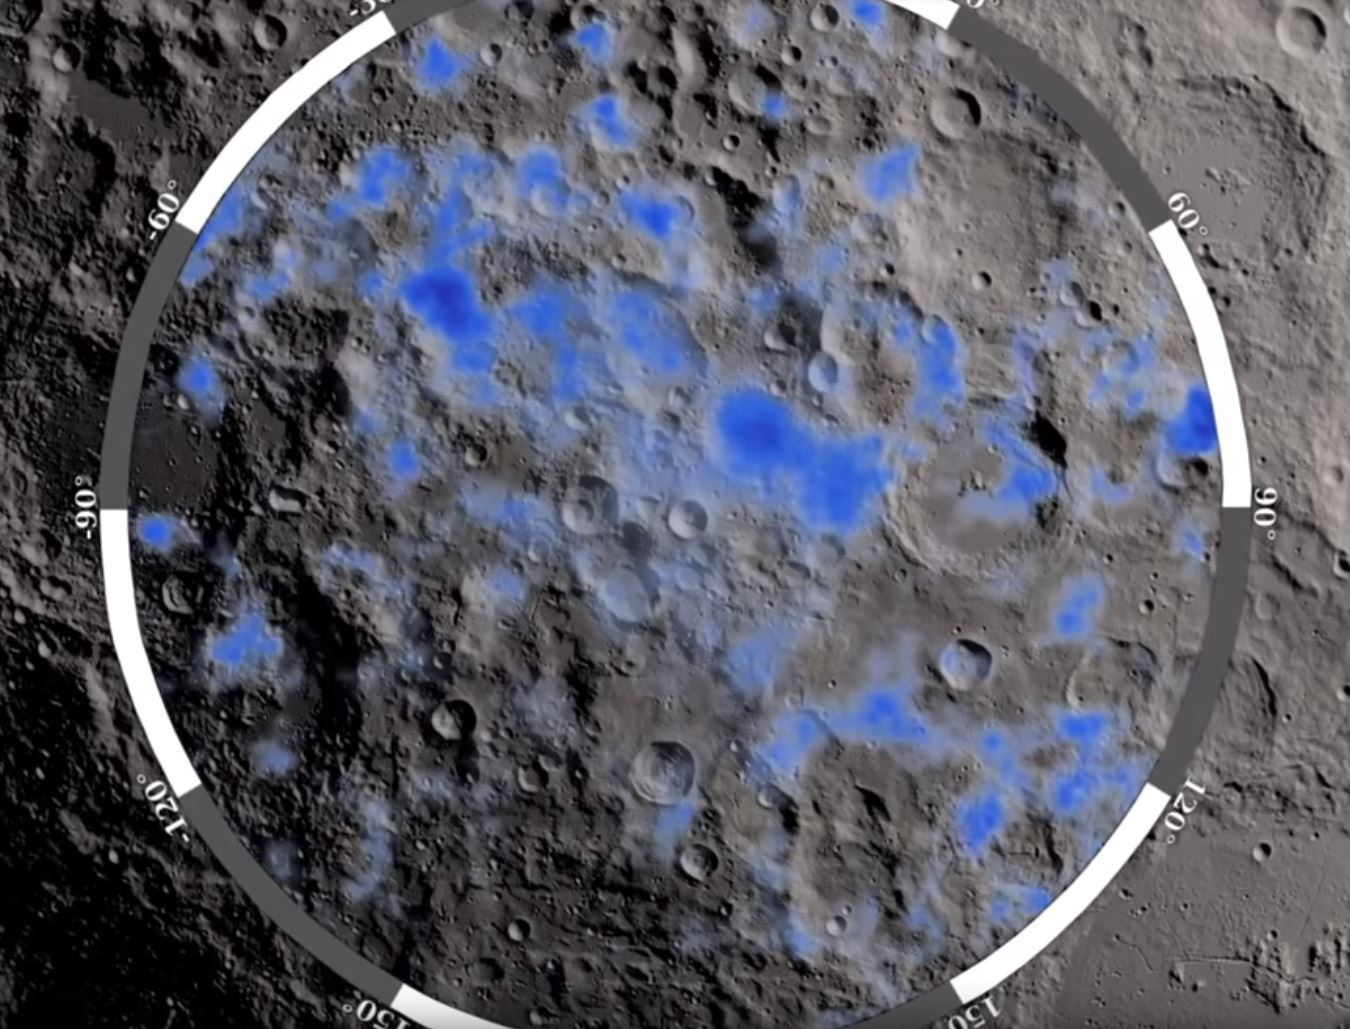 The blue areas show locations on the Moon's south pole where water ice is likely to exist - Image Credits: NASA/GSFC